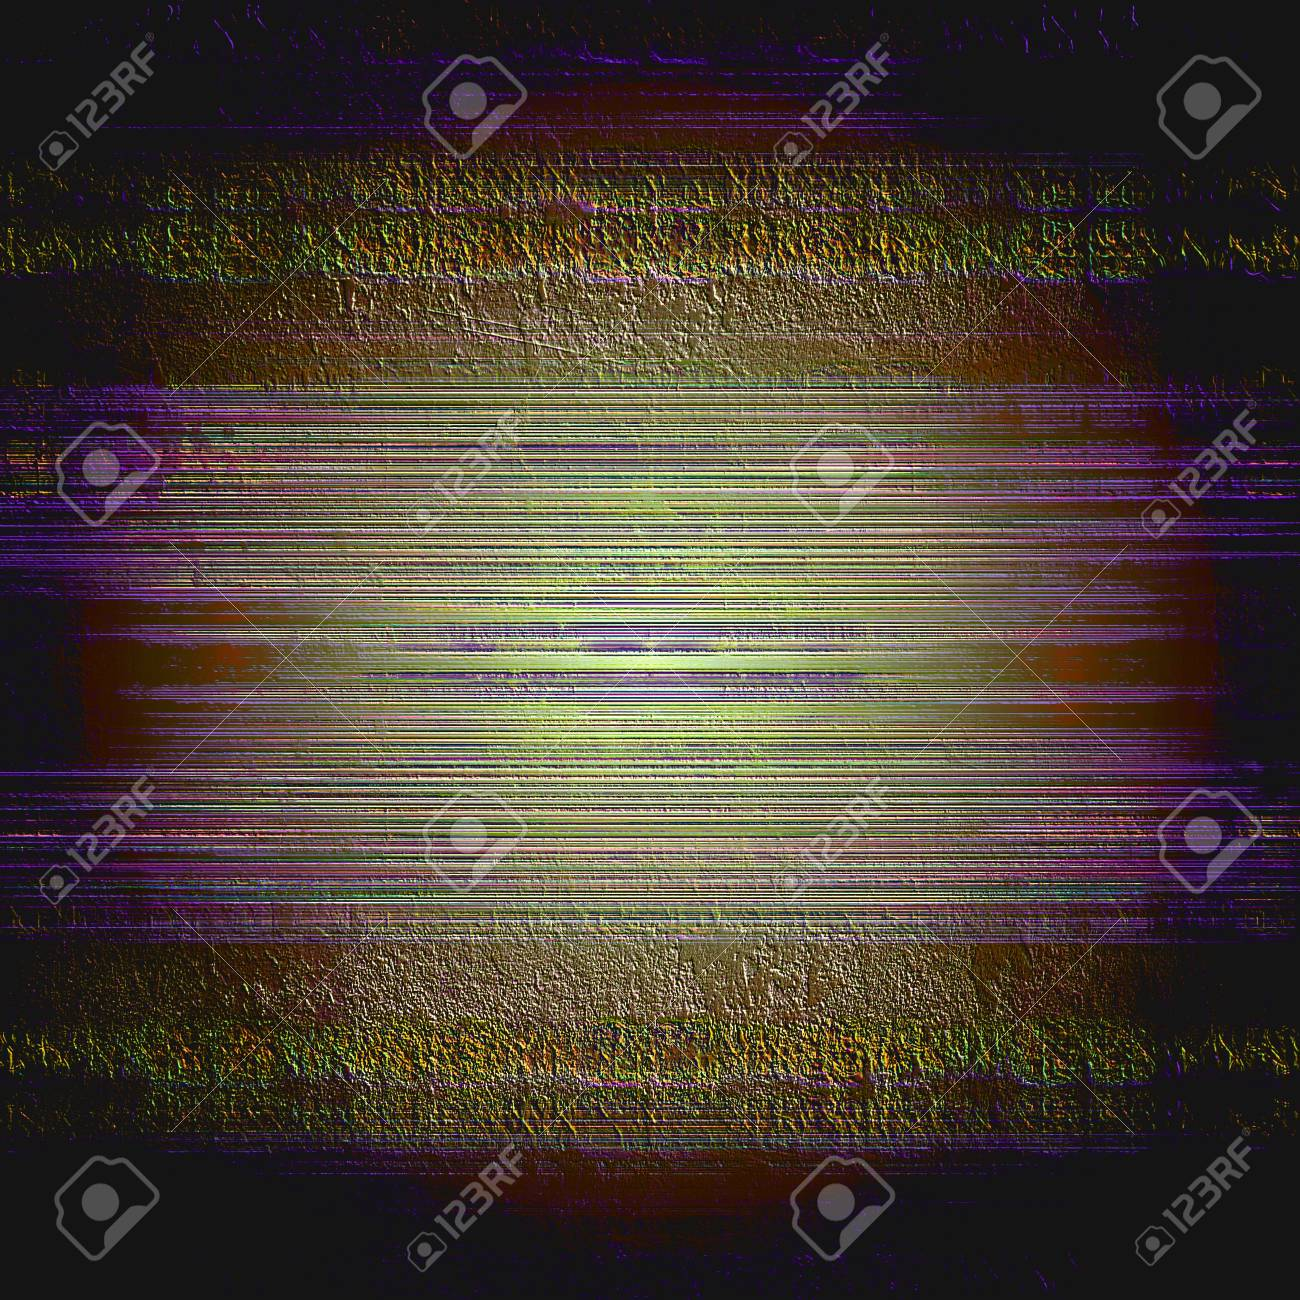 Abstract illustrated grunge background pattern for your text Stock Photo - 15732700